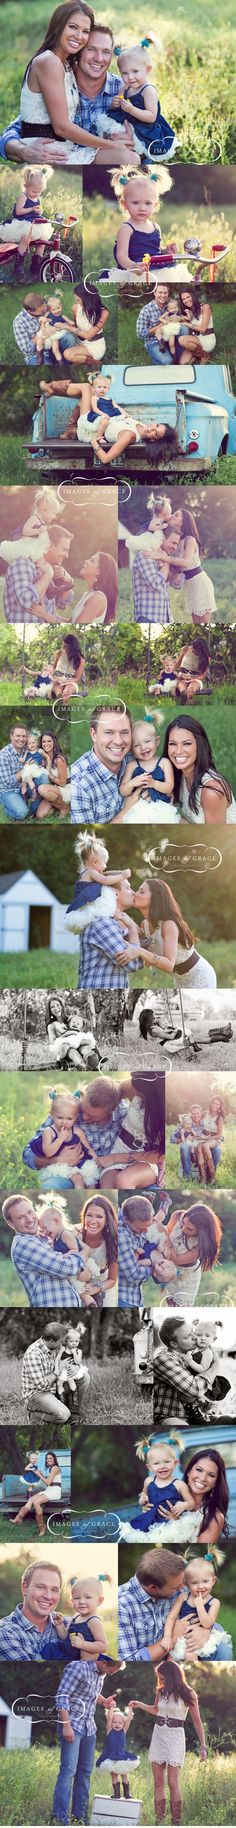 Adorable family phot